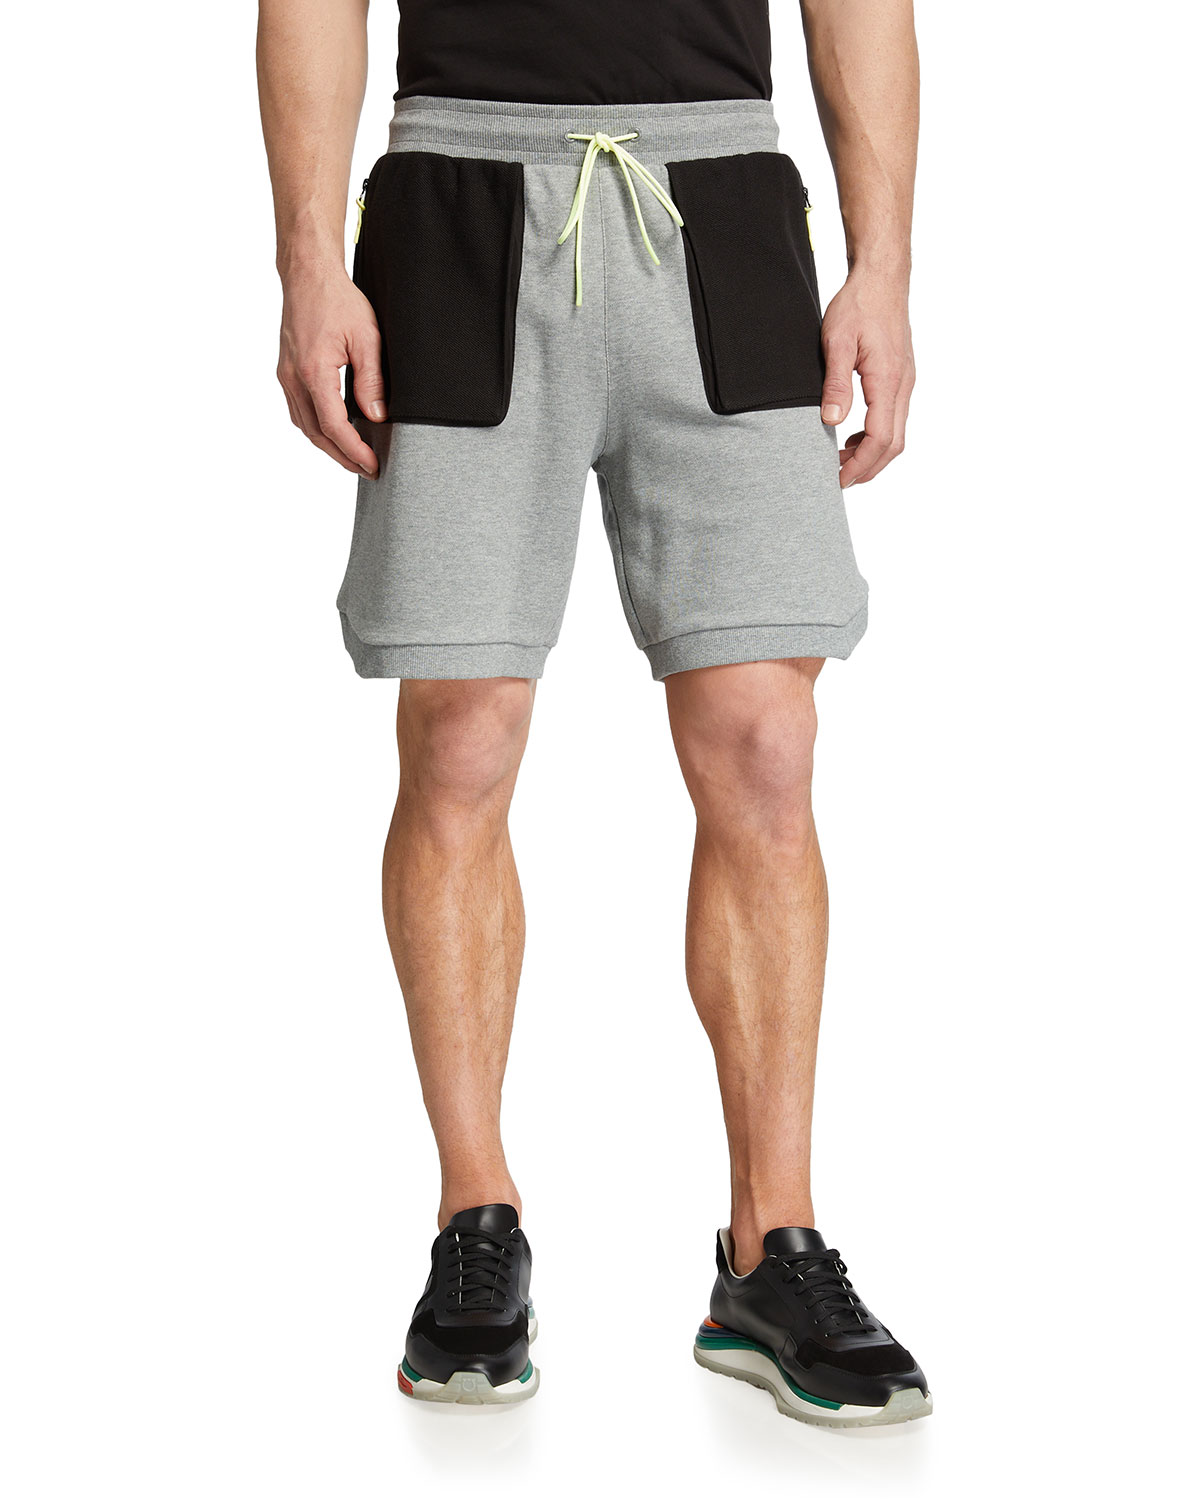 Puma MEN'S PLAYERS EDITION STANDBY COLORBLOCK SWEAT SHORTS